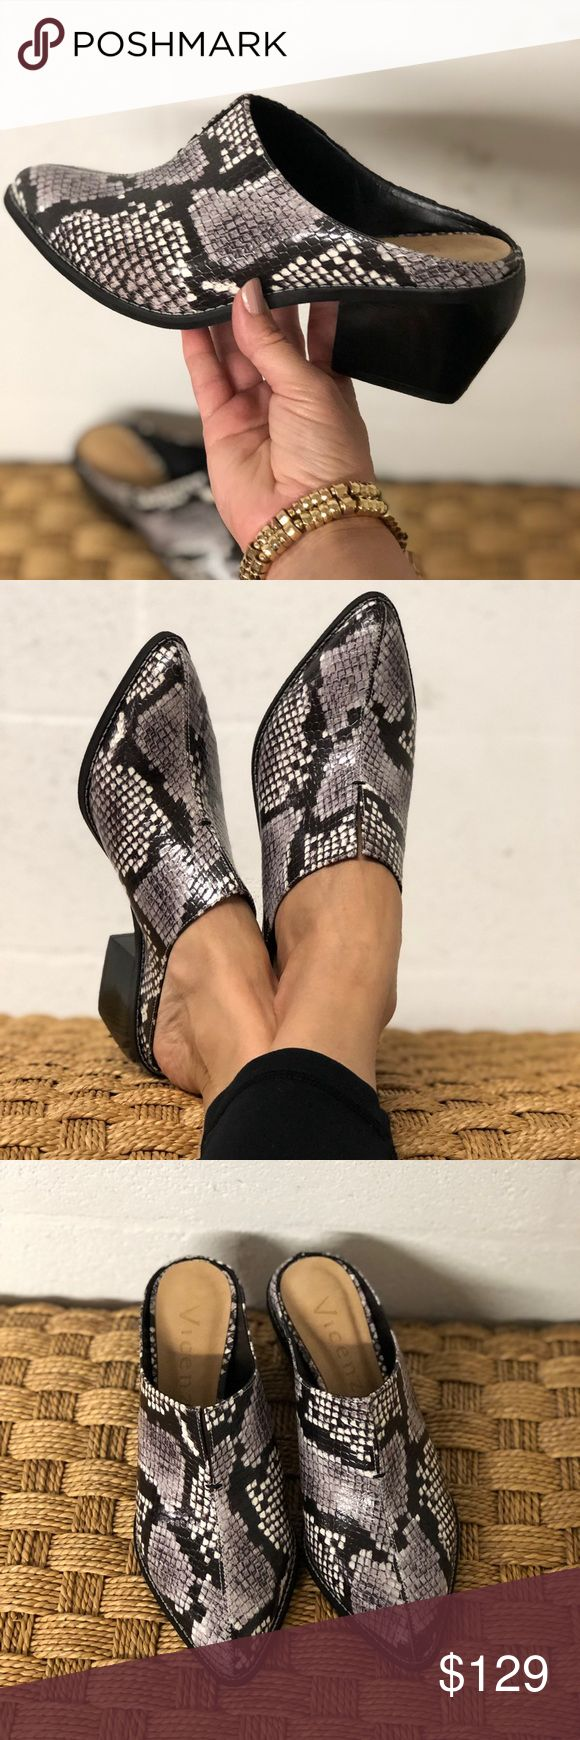 Vicenza Snake Print Leather Country Style Mules Vicenza Snake Print Leather Coun…